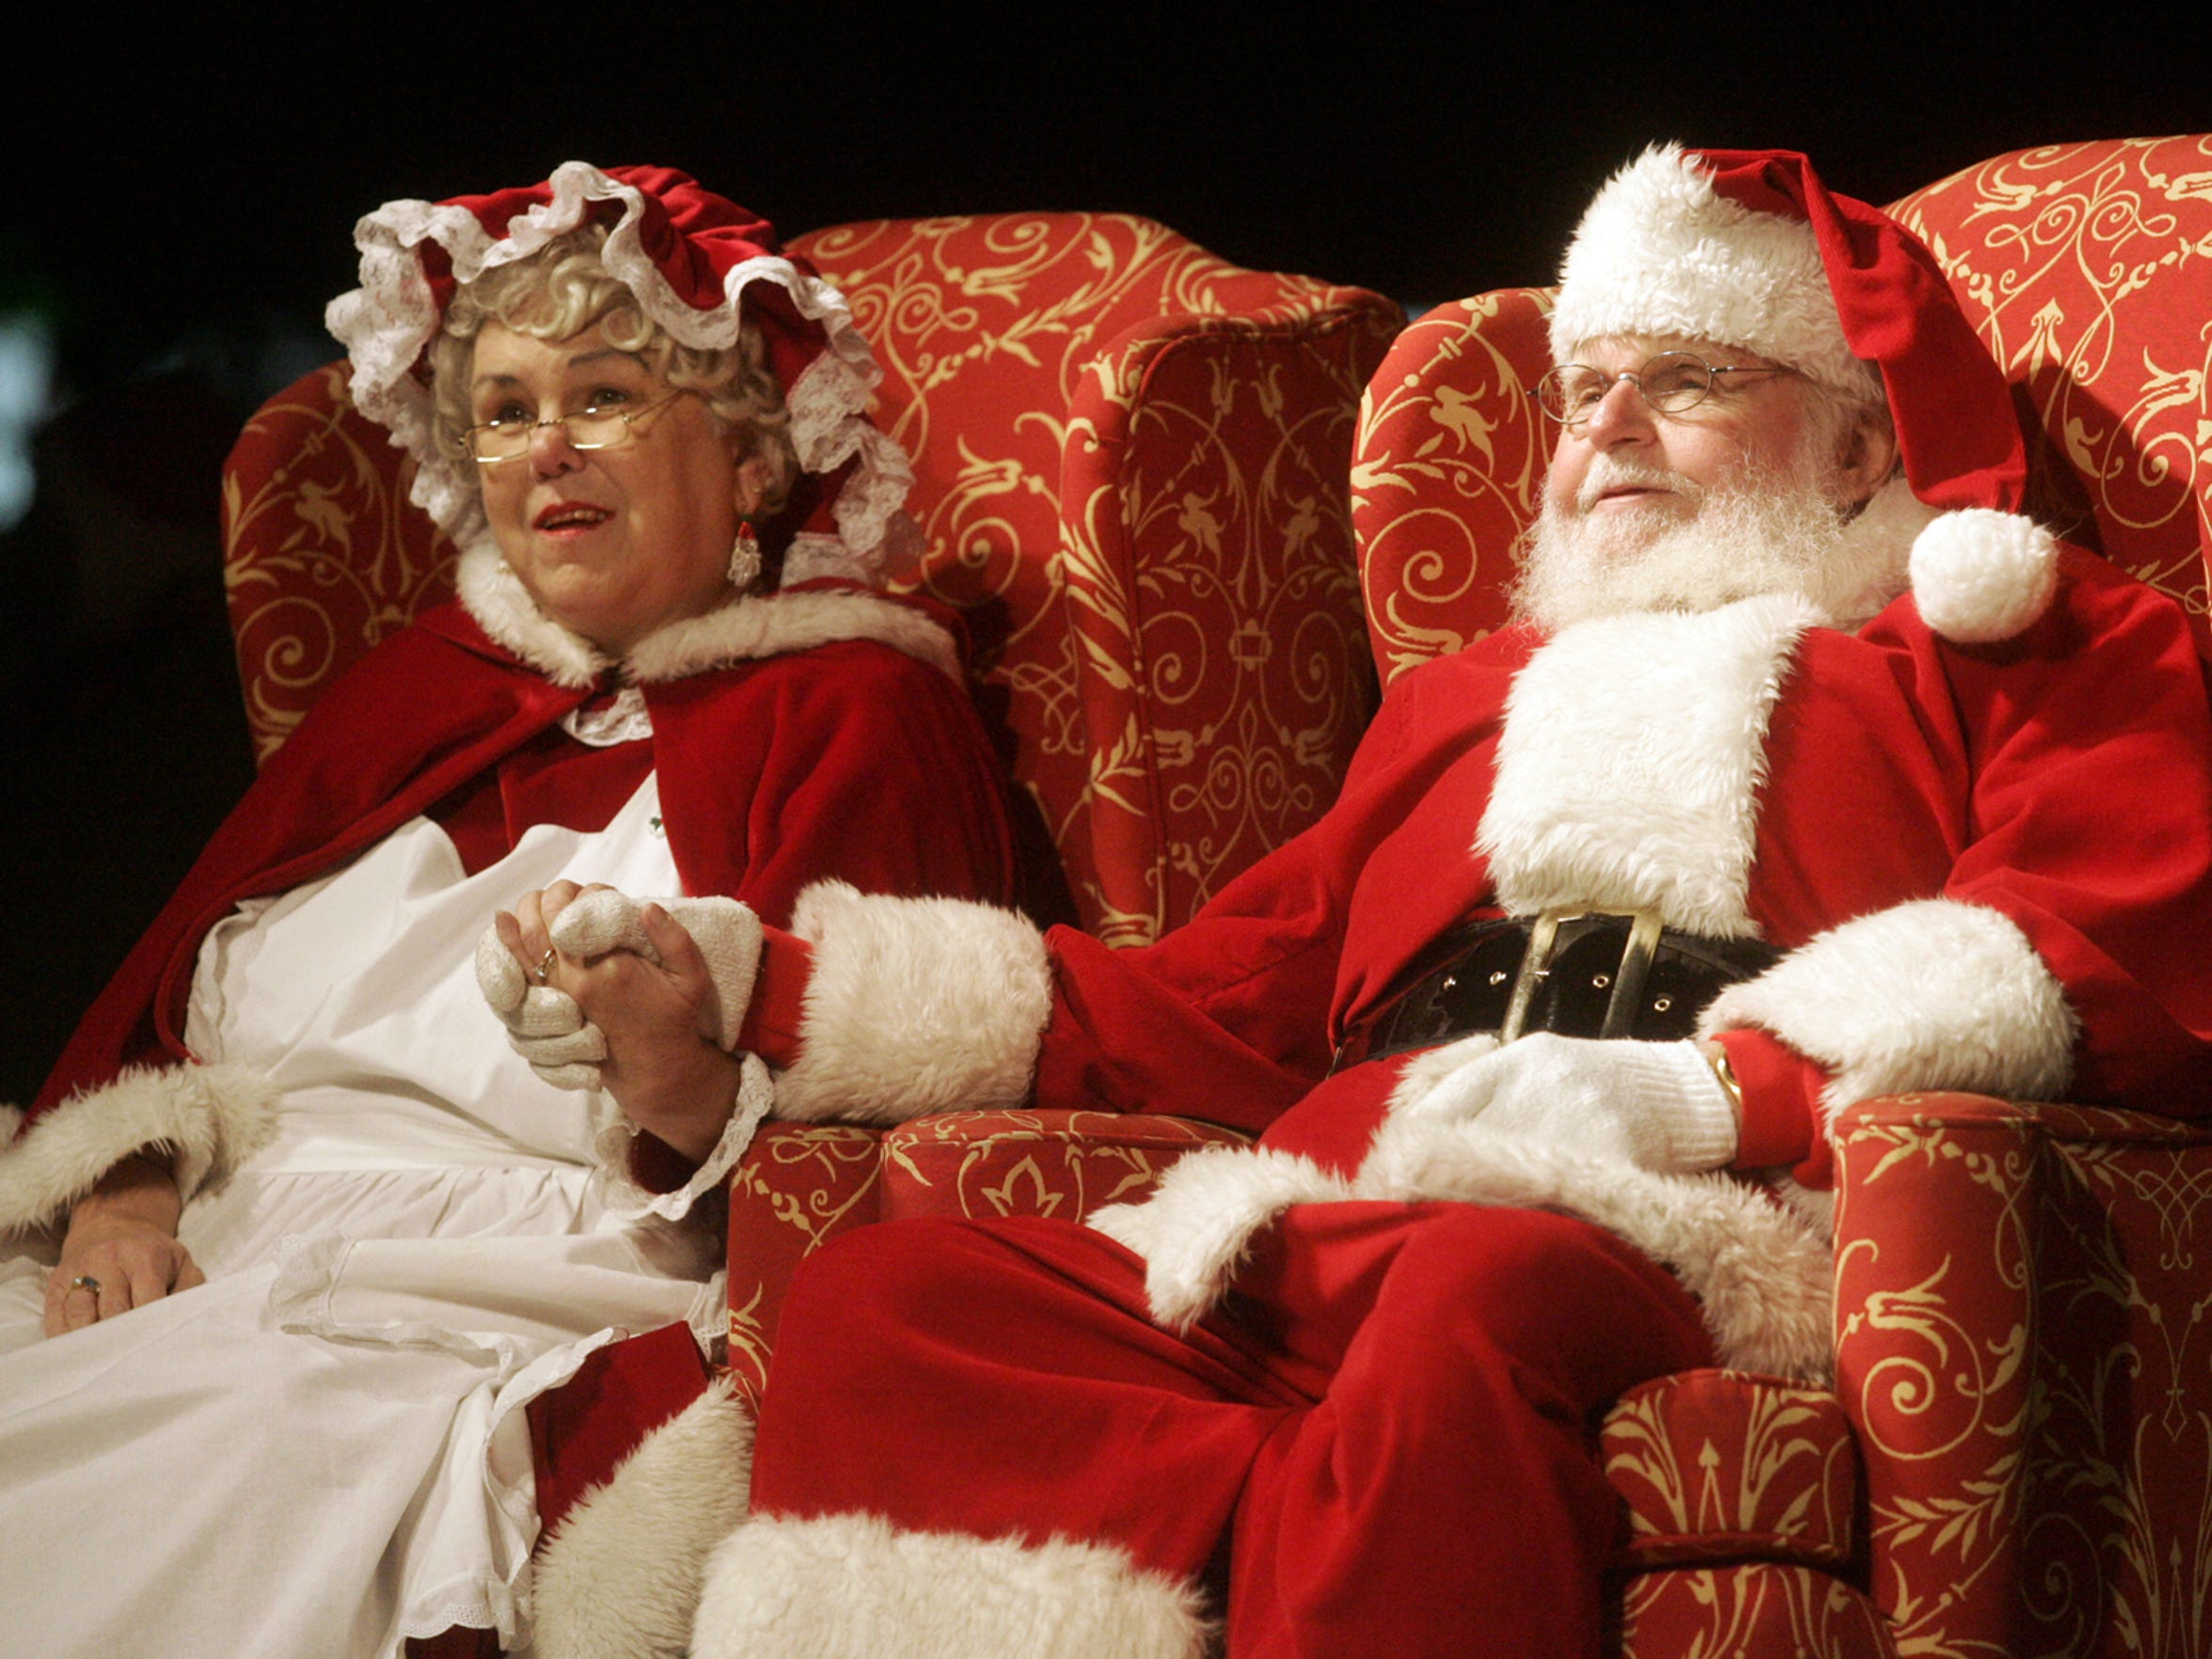 Santa and Mrs. Claus will be available for photos and to listen to wishes throughout the holidays at the Rutherford County Courthouse.